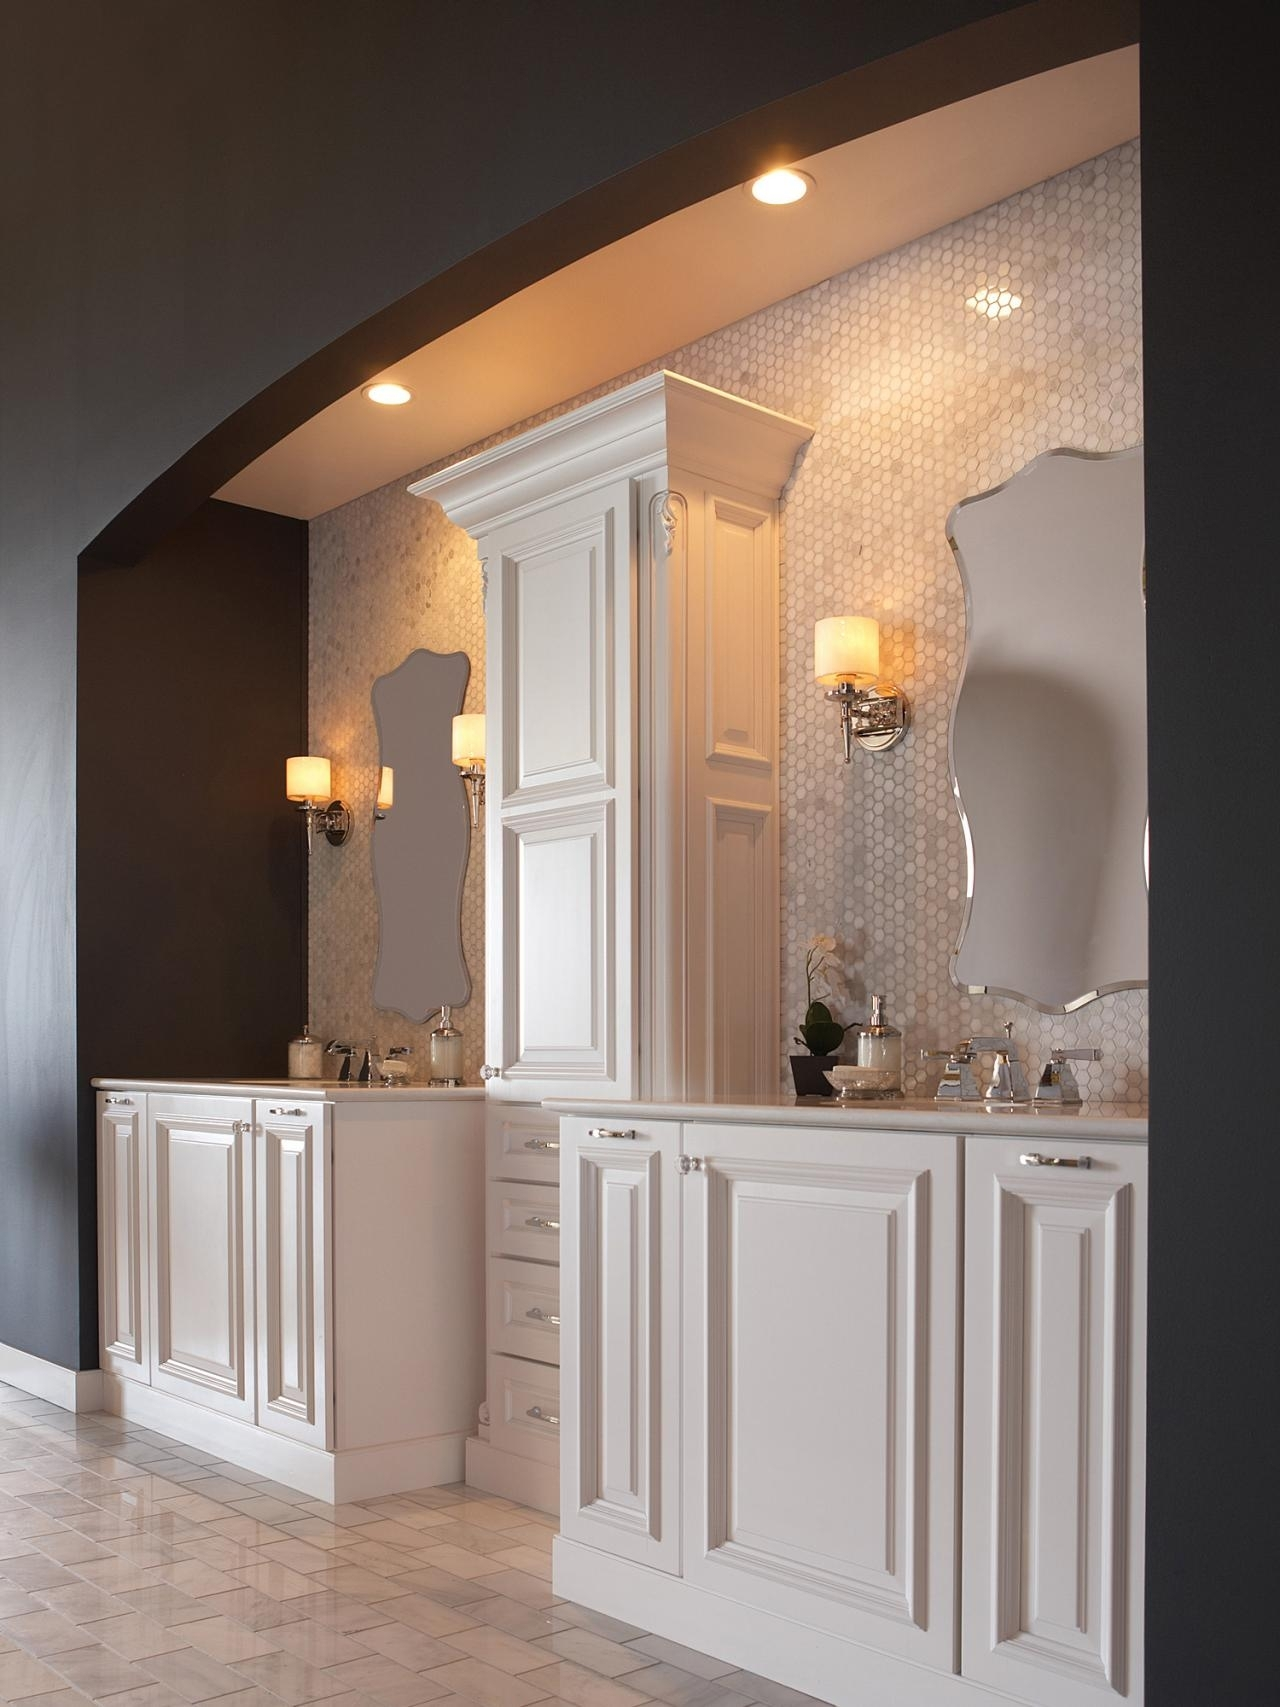 Witching Jill Bathroom Designs Jack Jill Bathroom Ideas Most Recommended Jack Jill Bathroom Plans Jill Bathroom Ideas Jack Most Recommended Jack curbed Jack And Jill Bathroom Plans